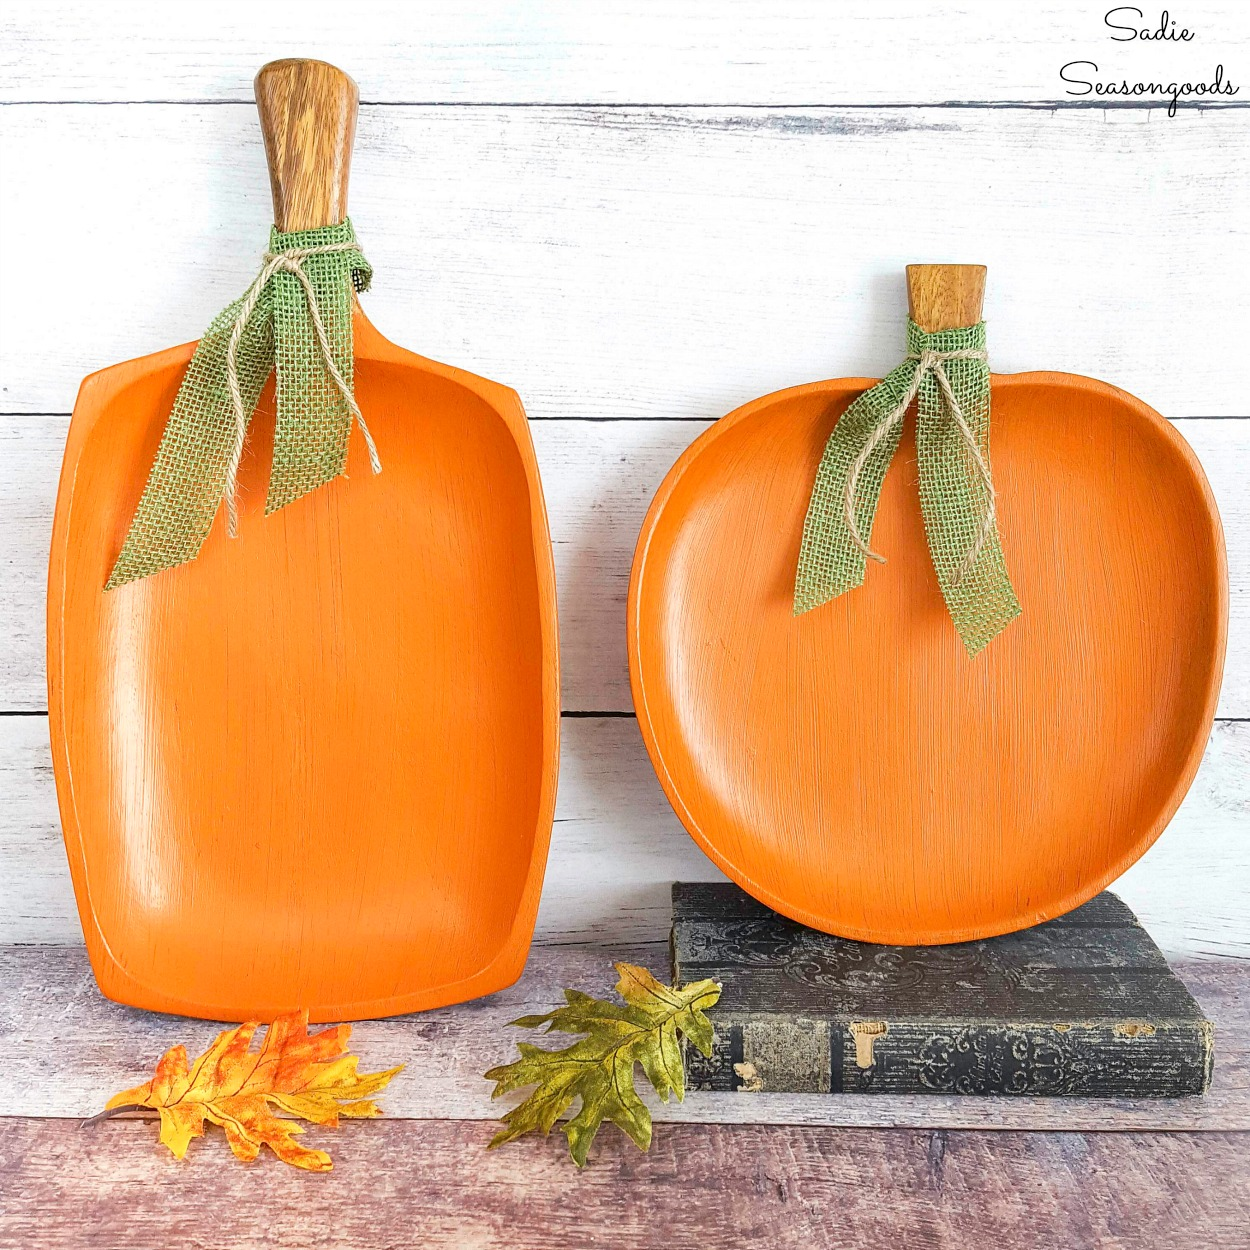 Painted wooden pumpkins from monkey pod wood for rustic fall decor